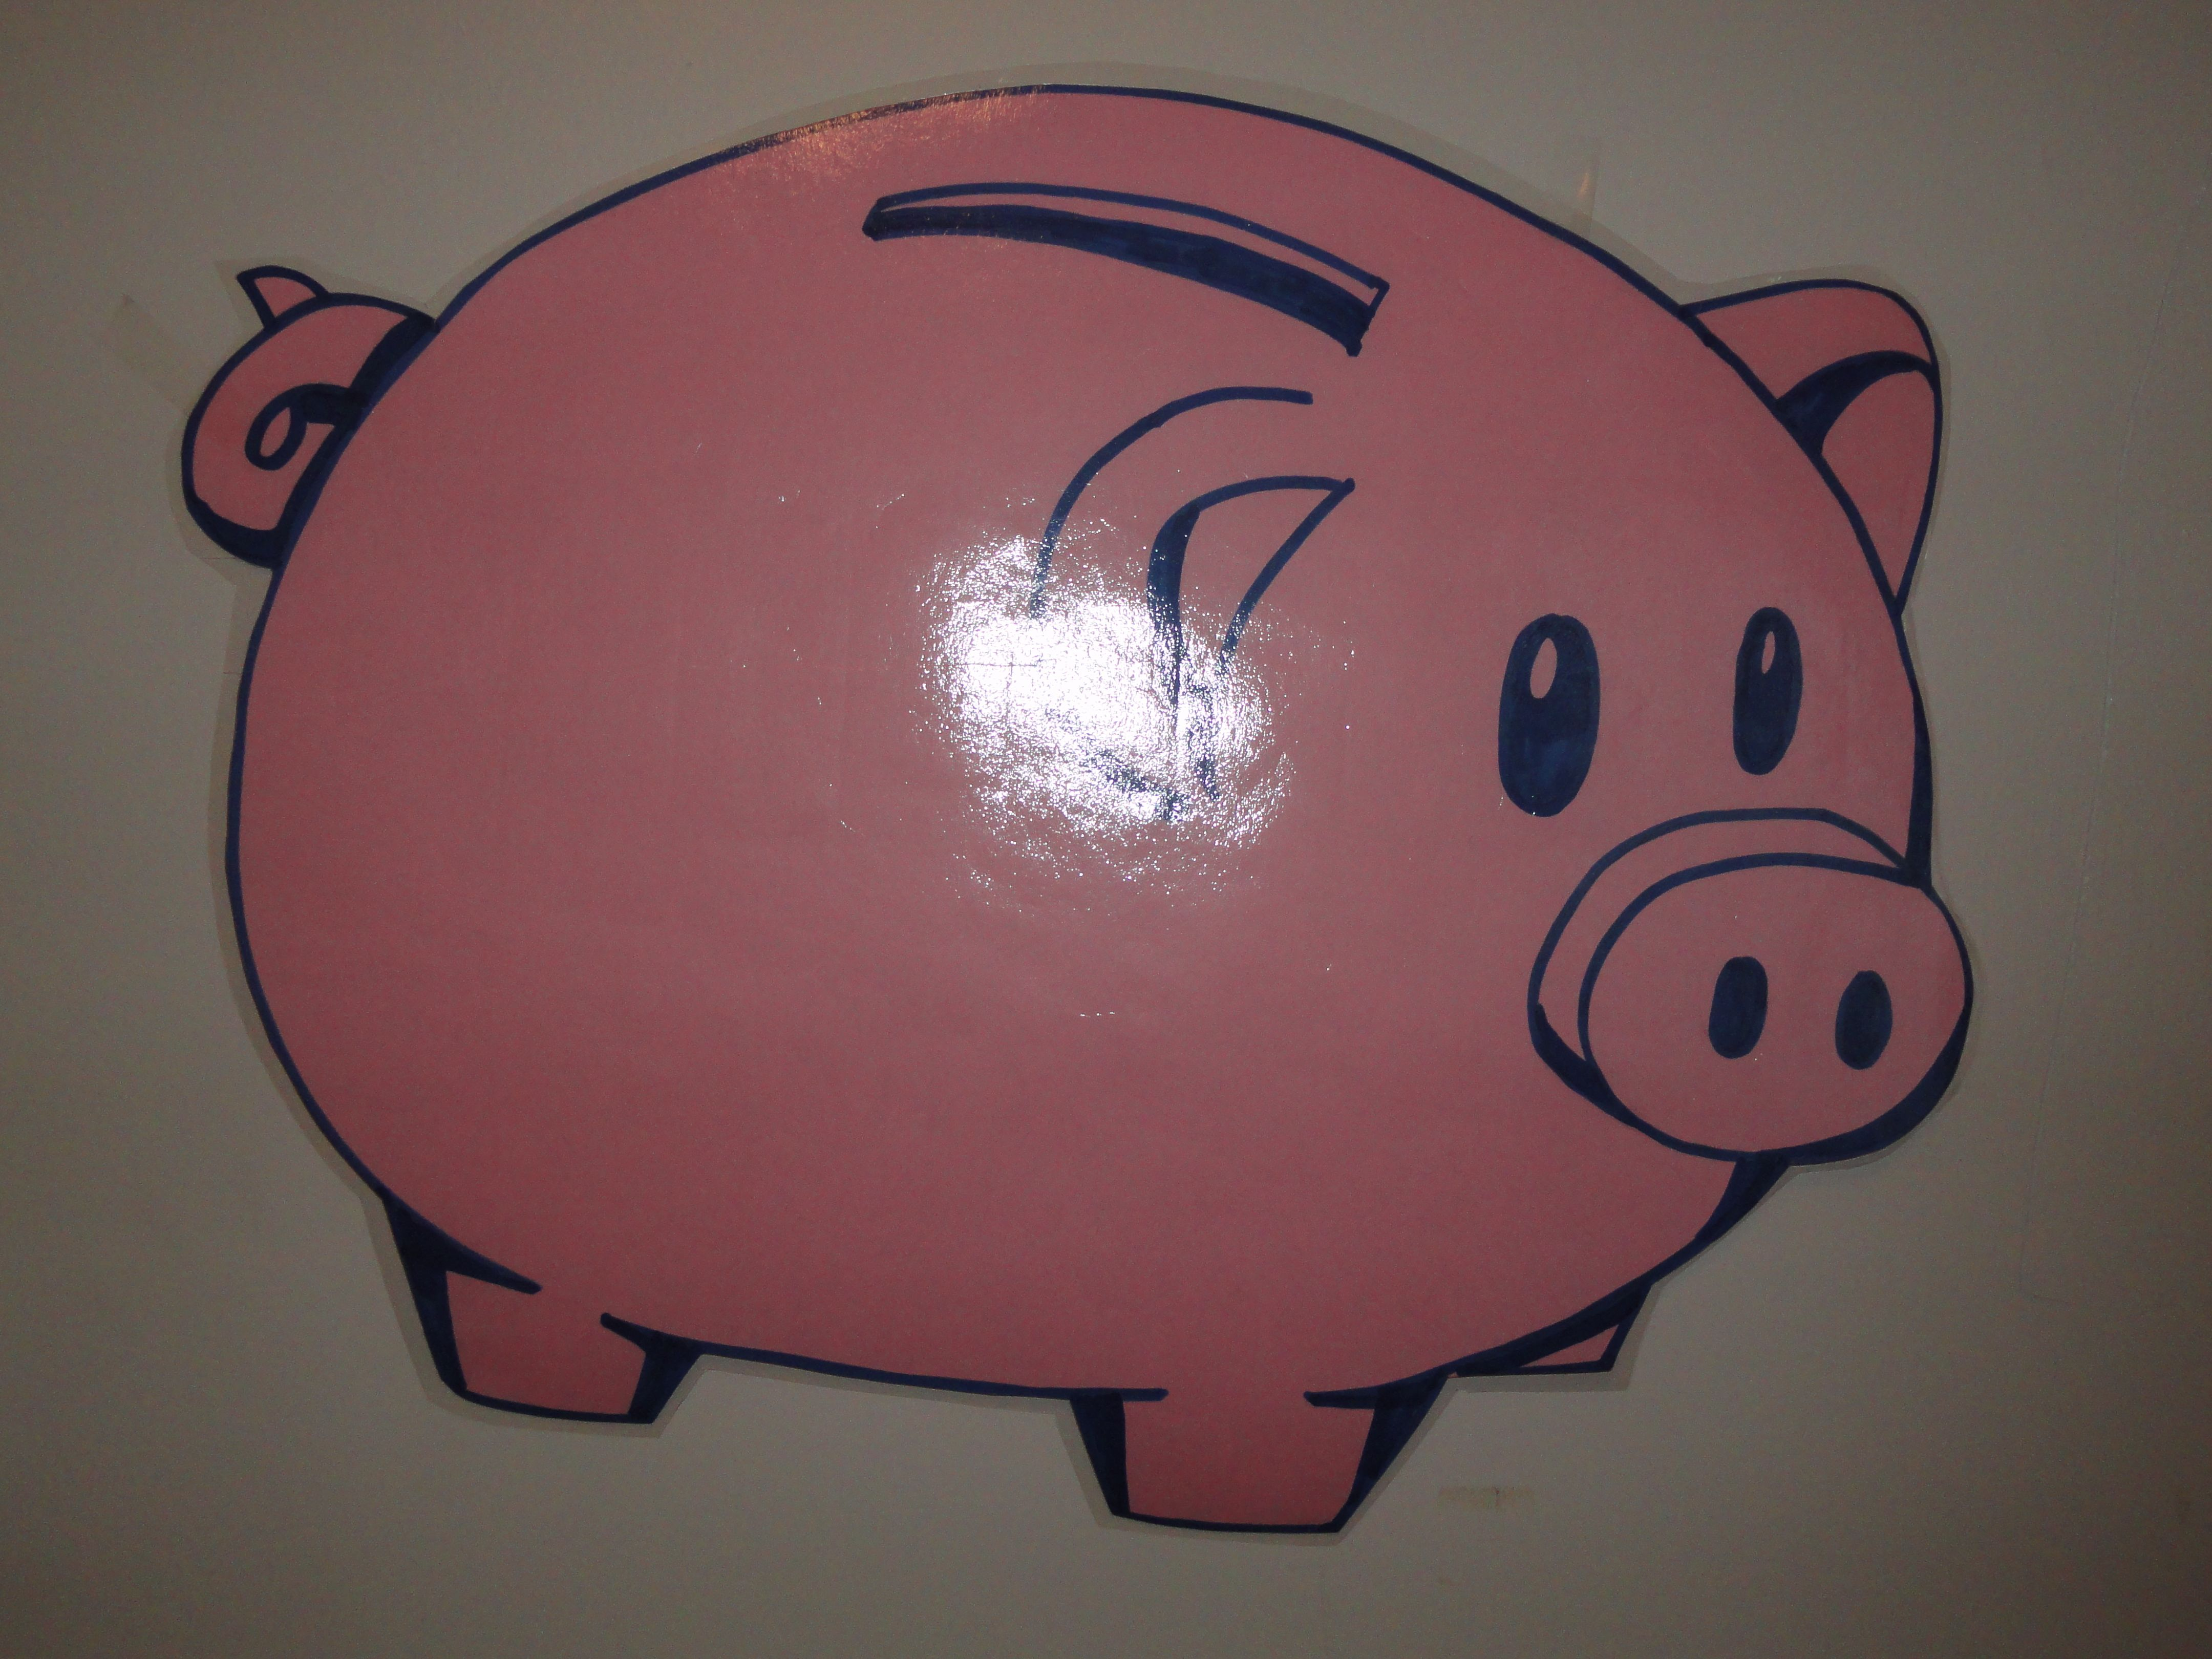 Used This Piggy Bank To Teach Money Adding Subtracting